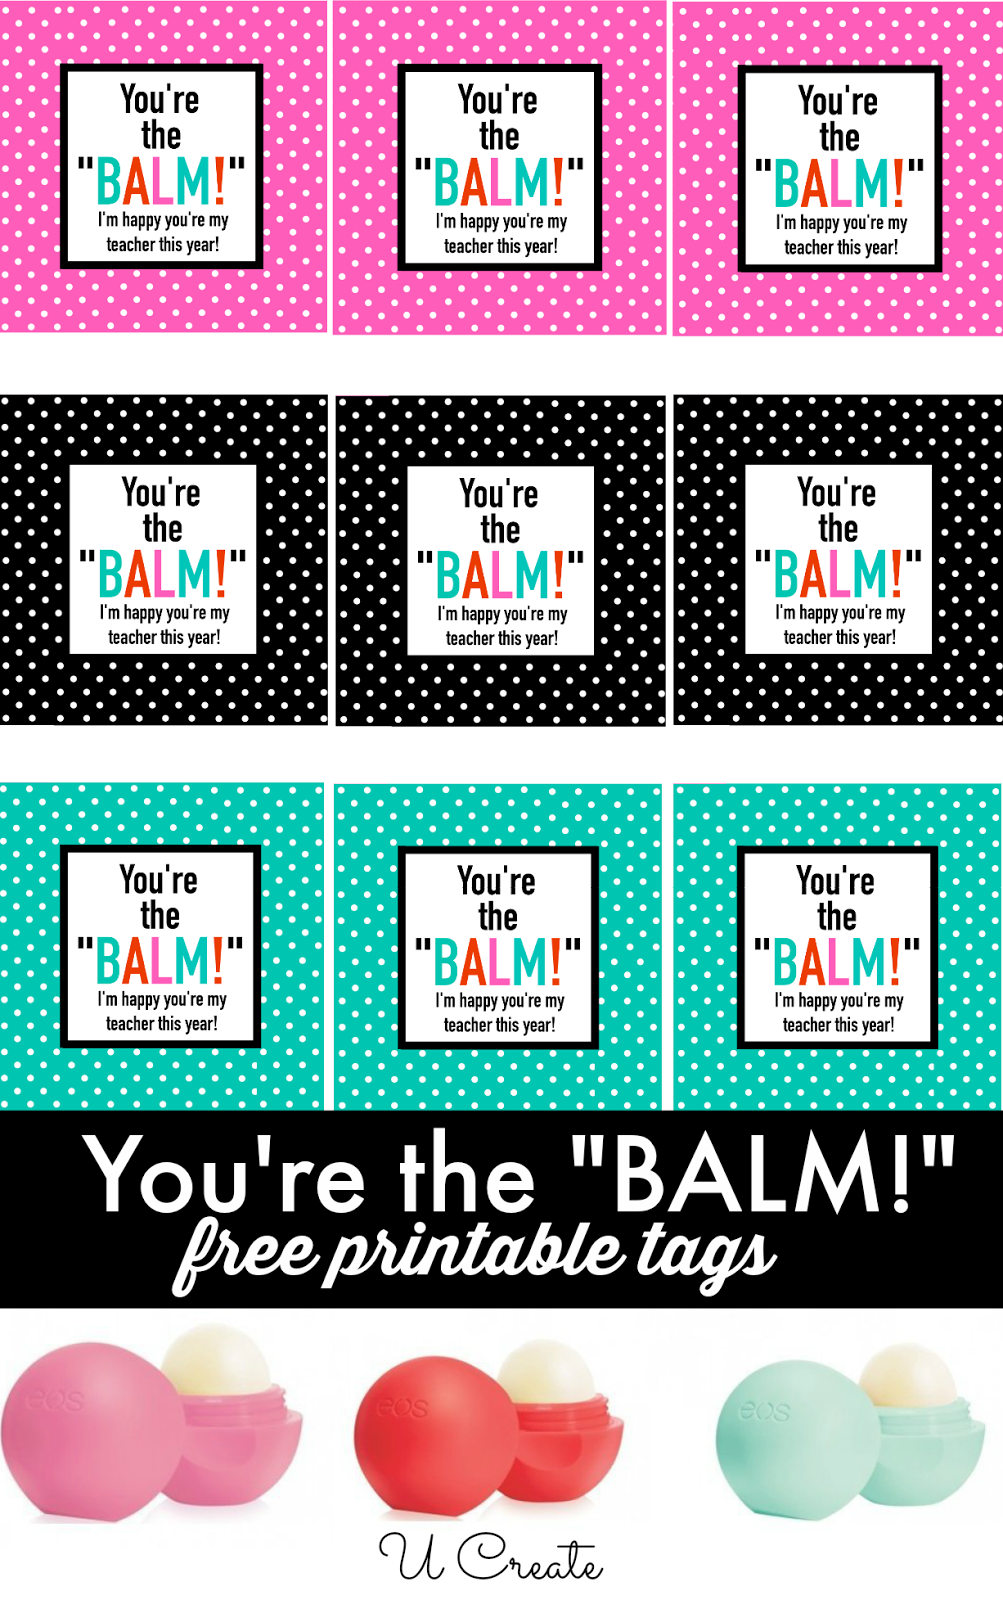 graphic relating to You're the Balm Teacher Free Printable called Free of charge Printables: Youre the balm Terrific Options - Higher education and